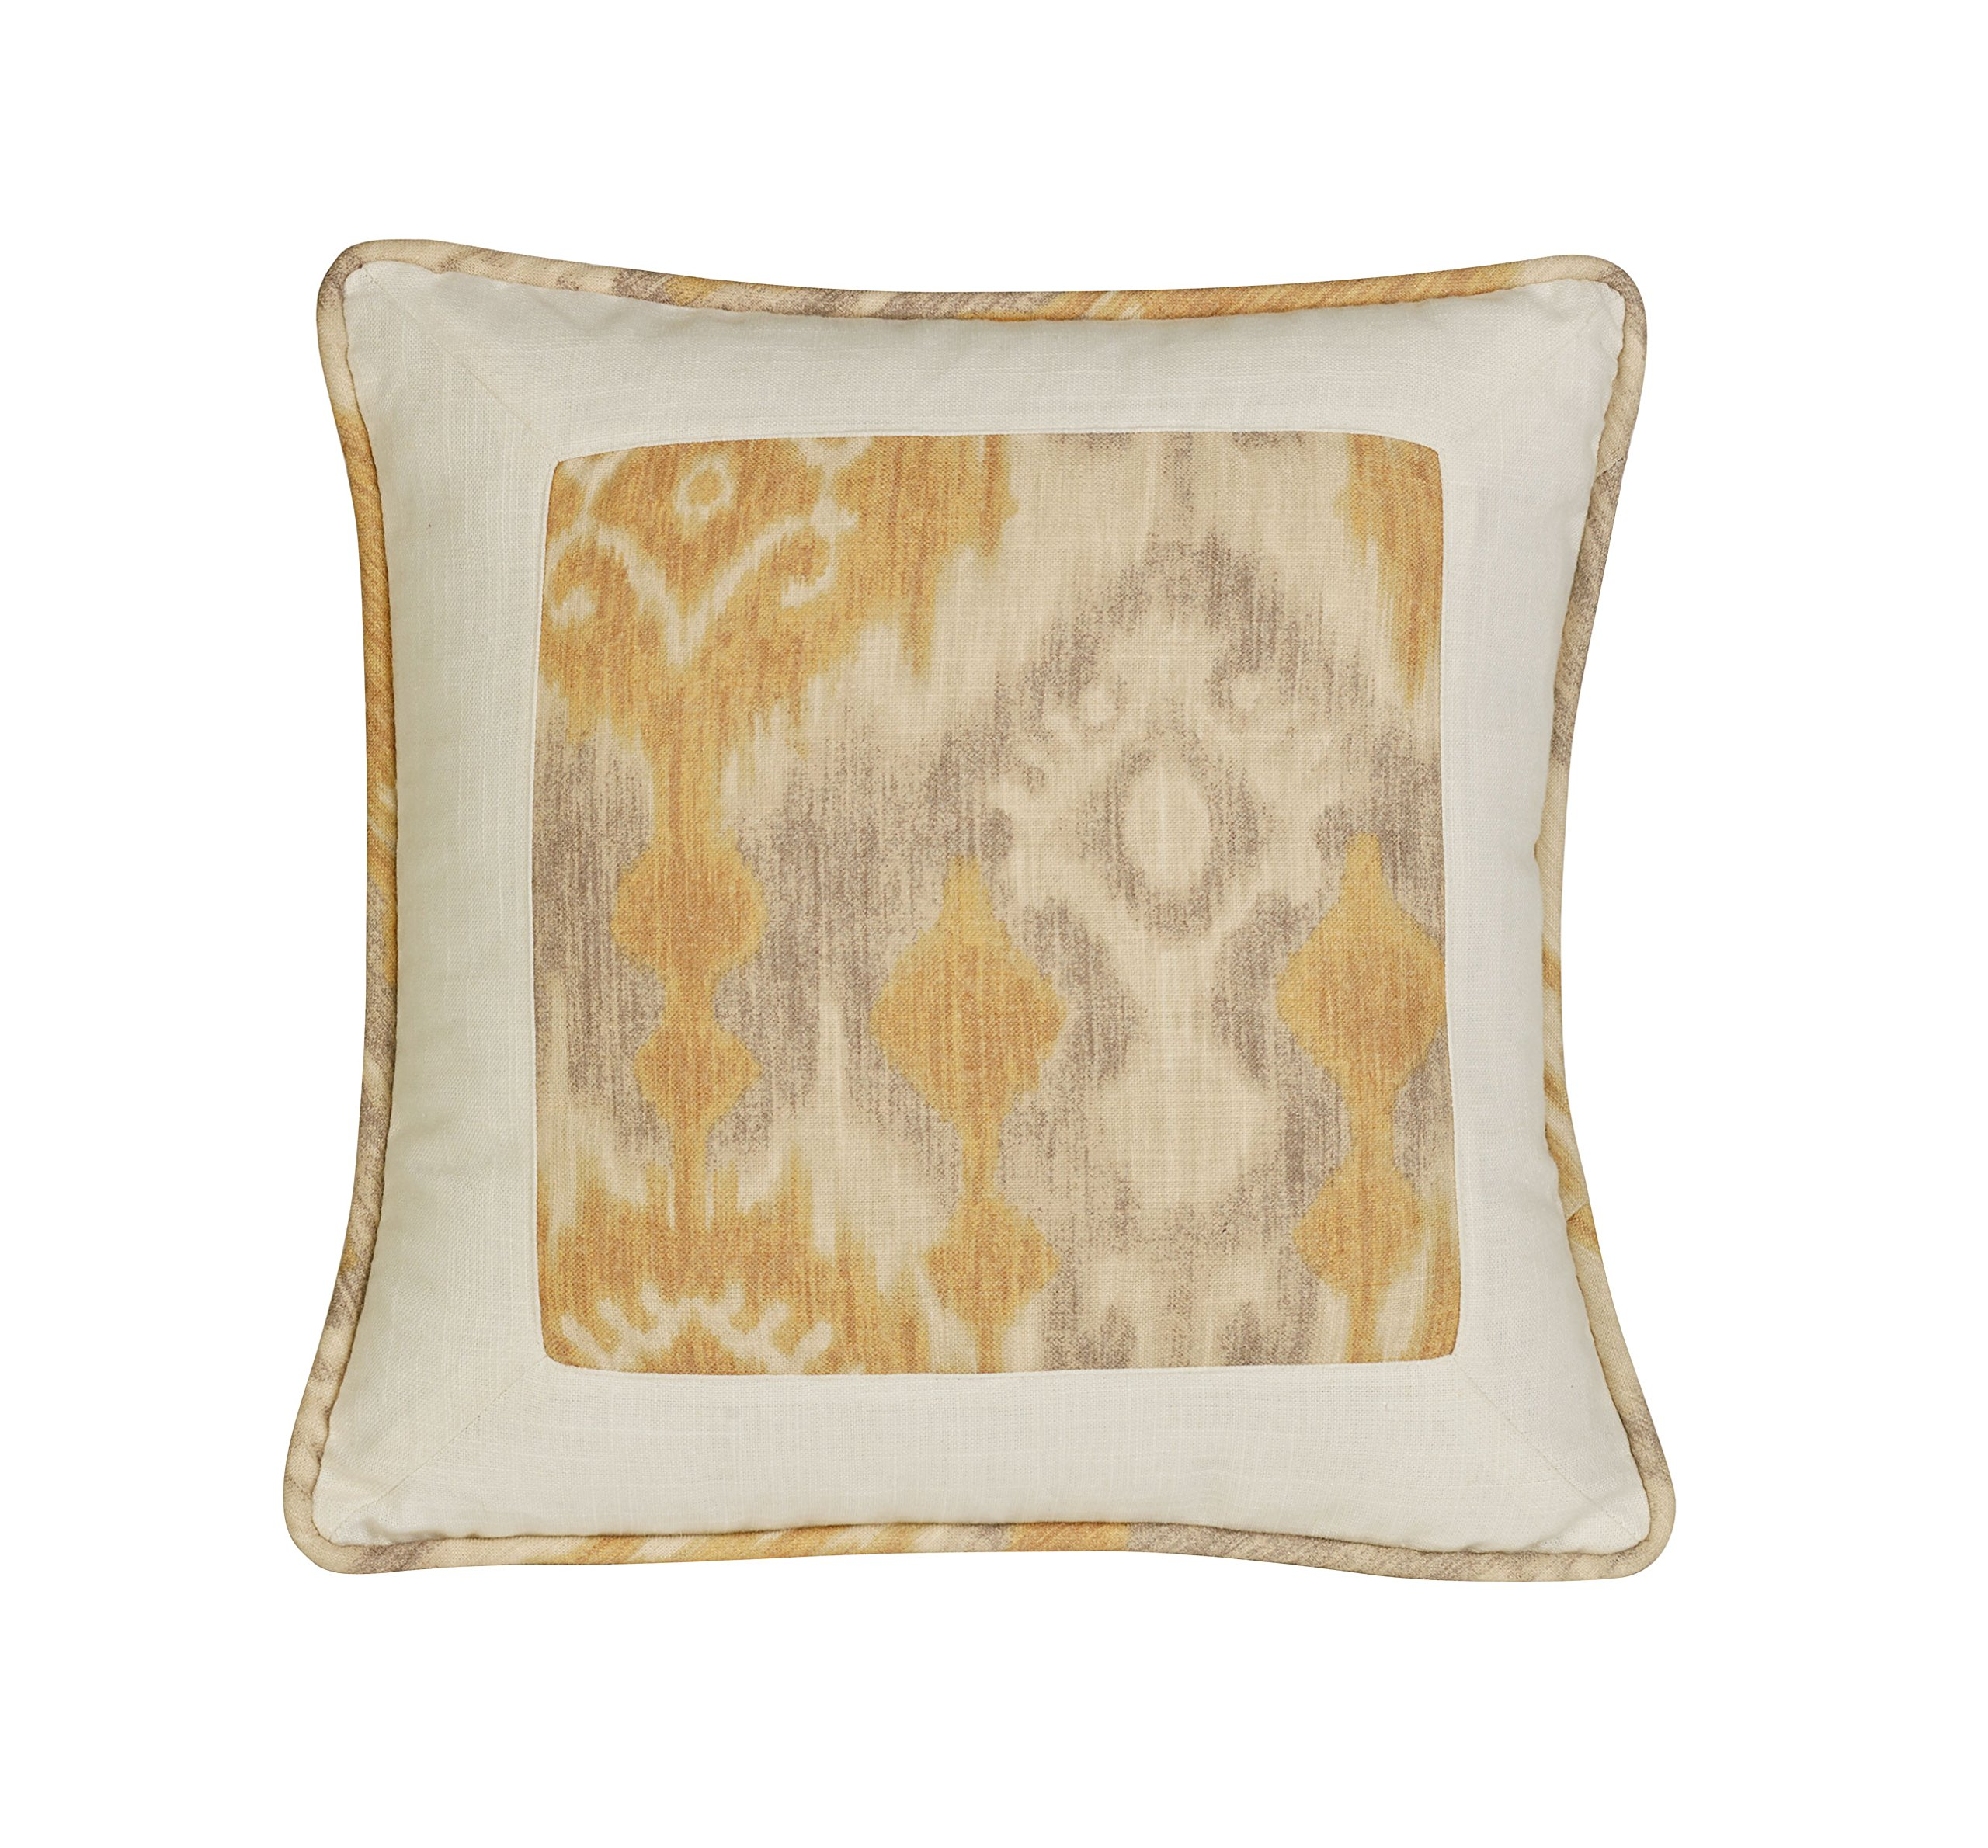 HiEnd Accents Casablanca Framed Pillow, 18 by 18'', Geometric, Yellow